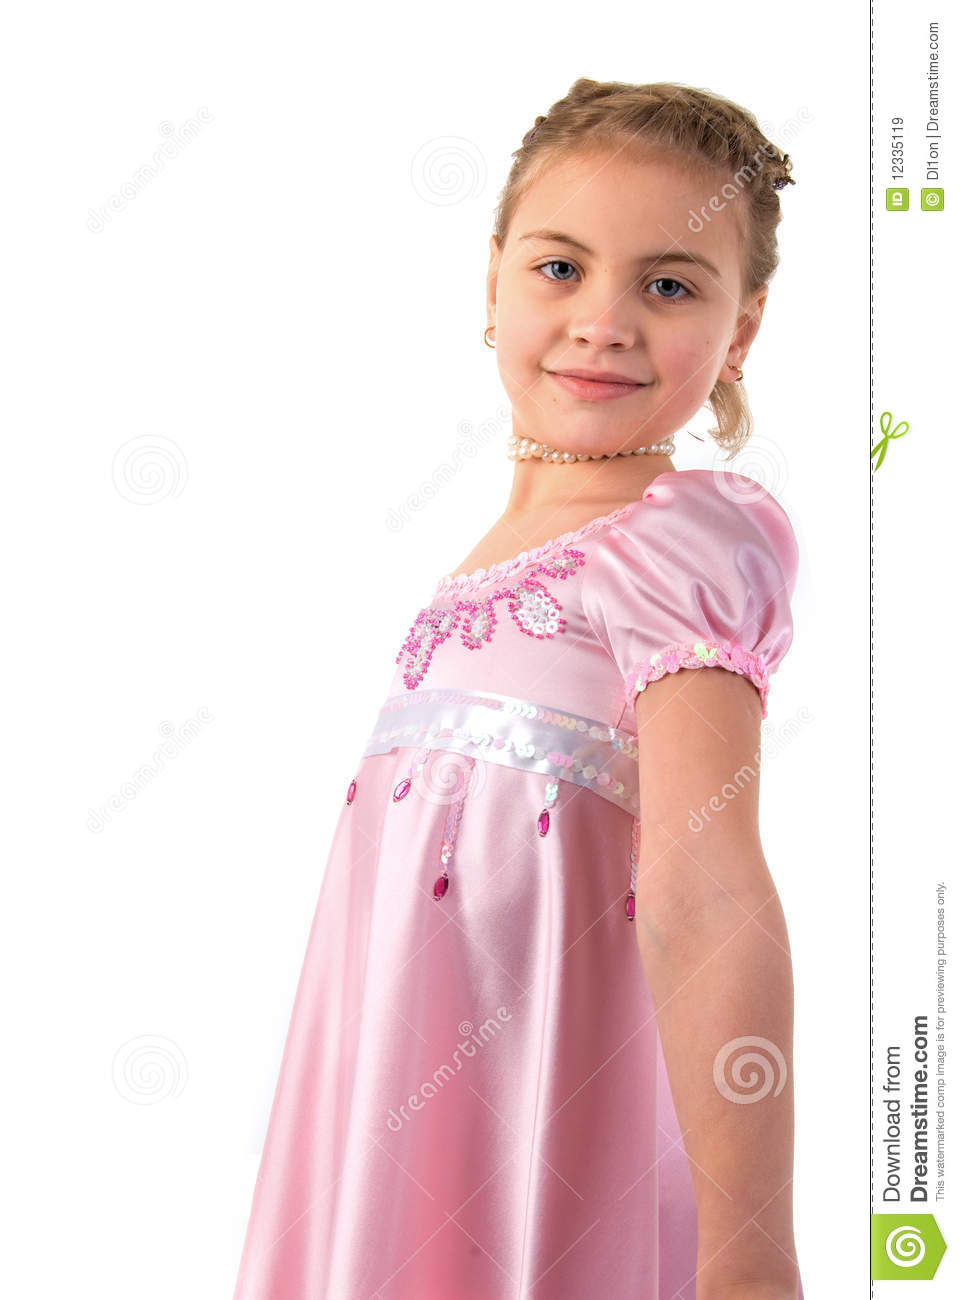 Little girl looks princess in beautiful dress stock image for Small princess